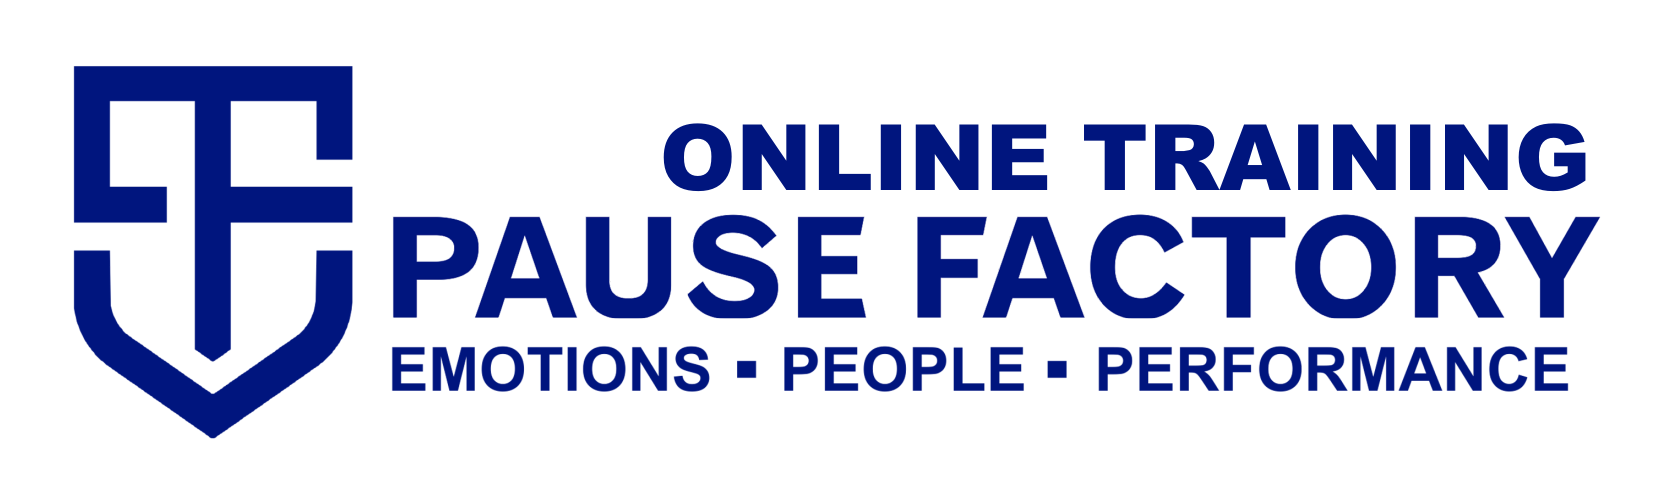 Pause Factory Online Training